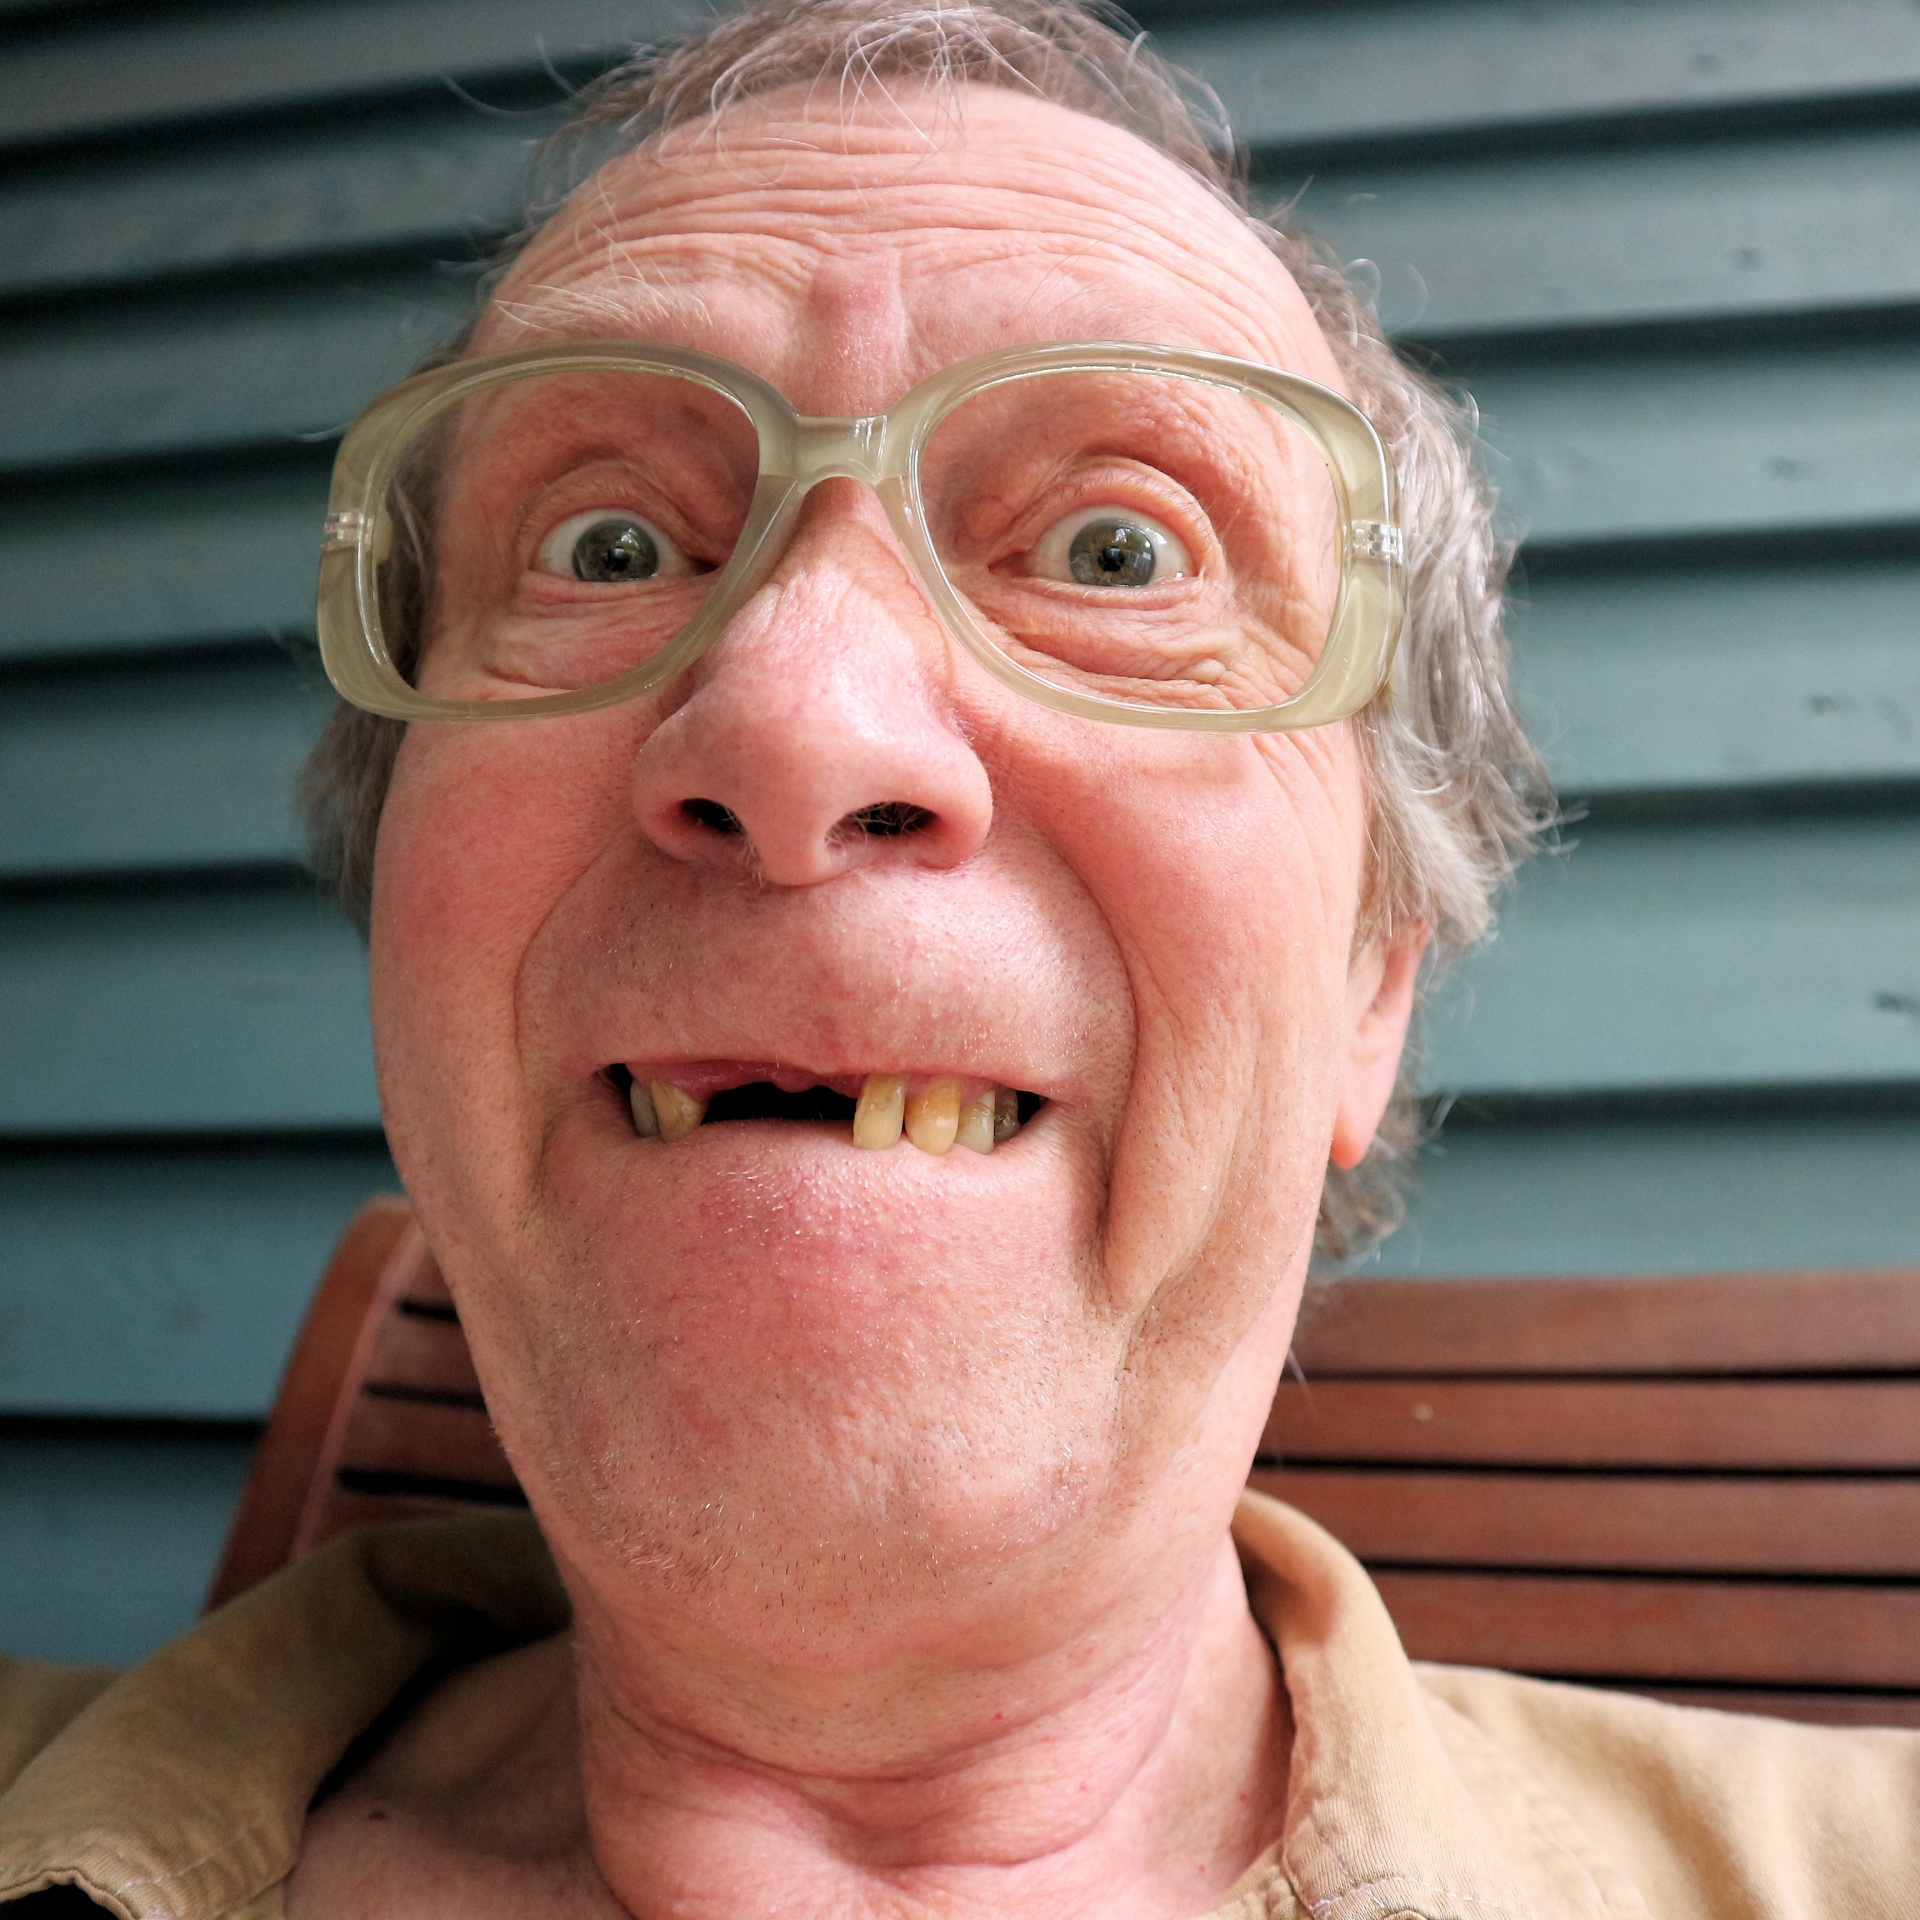 ugly face pictures - HD1920×1920